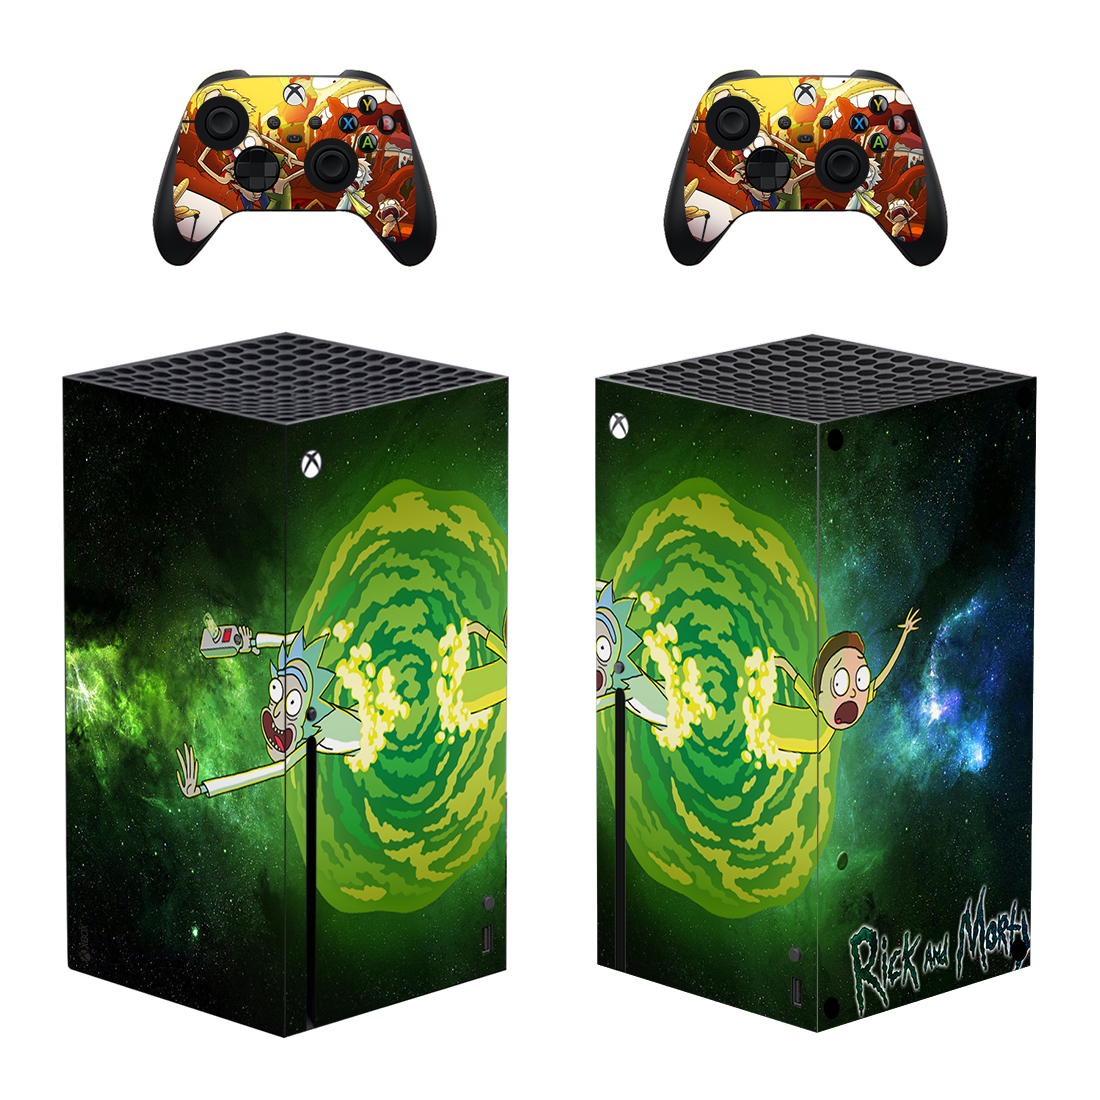 Rick And Morty Xbox Series X Skin Sticker Decal